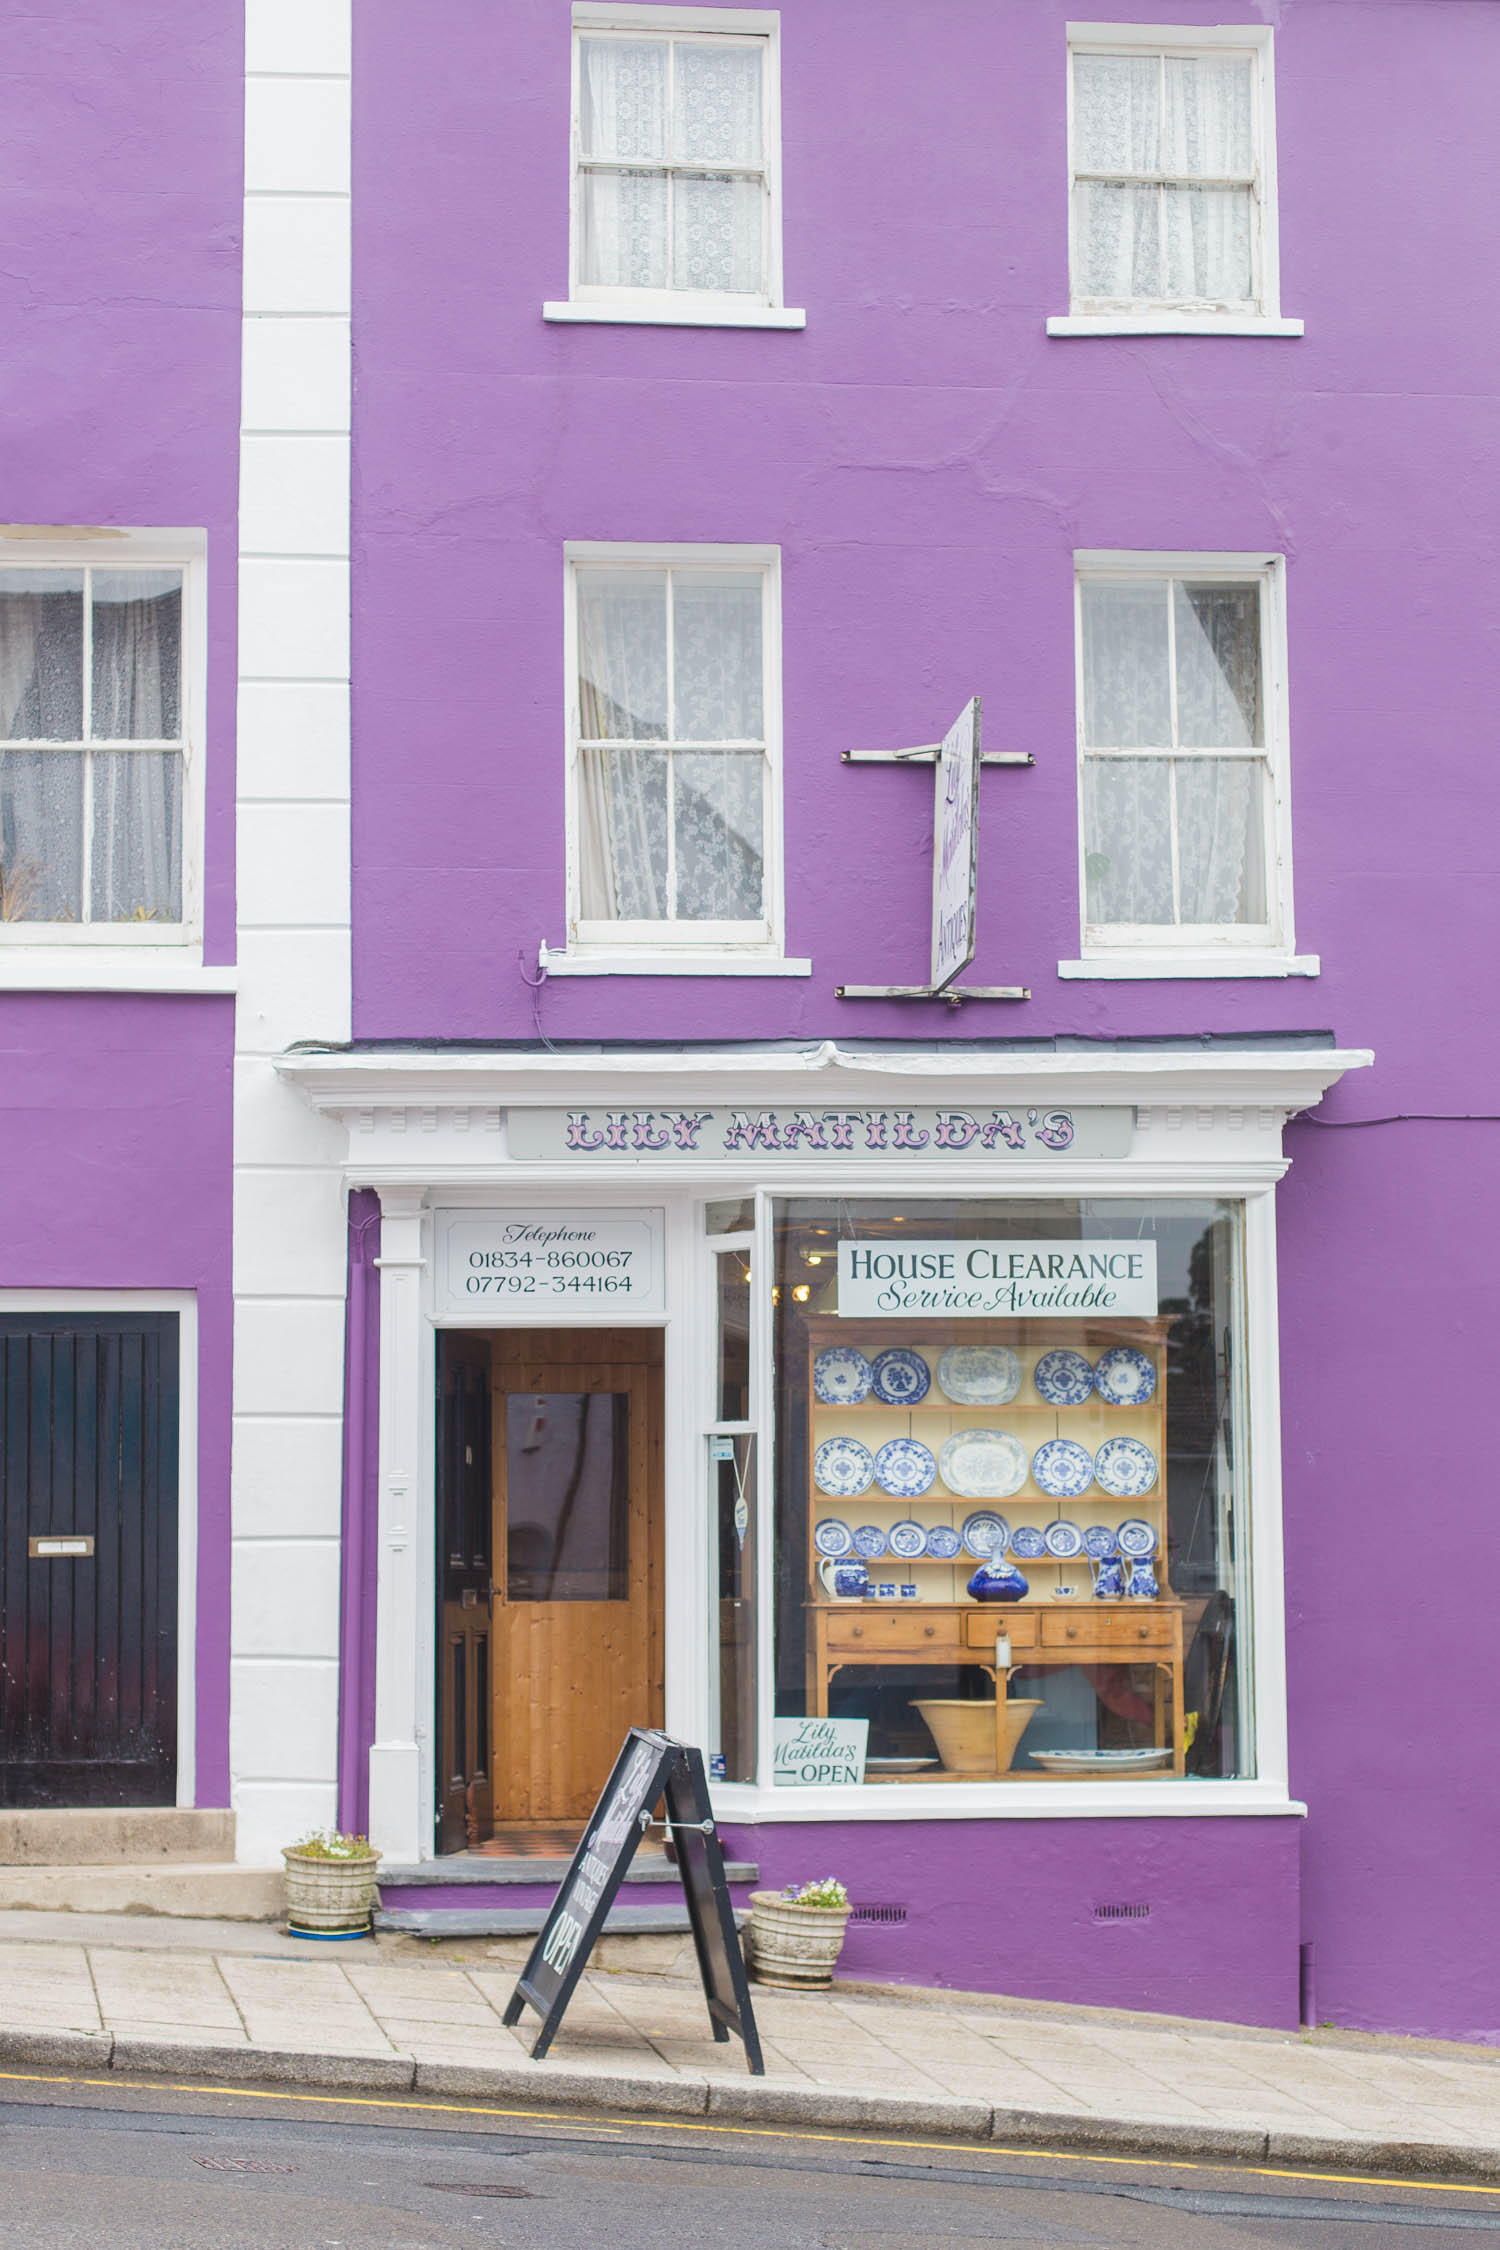 Fancy escaping to Wales for a relaxing long weekend? Travel influencer Kristabel Plummer shares 3 colourful villages to visit in South West Wales, Saundersfoot, Tenby & Narberth.